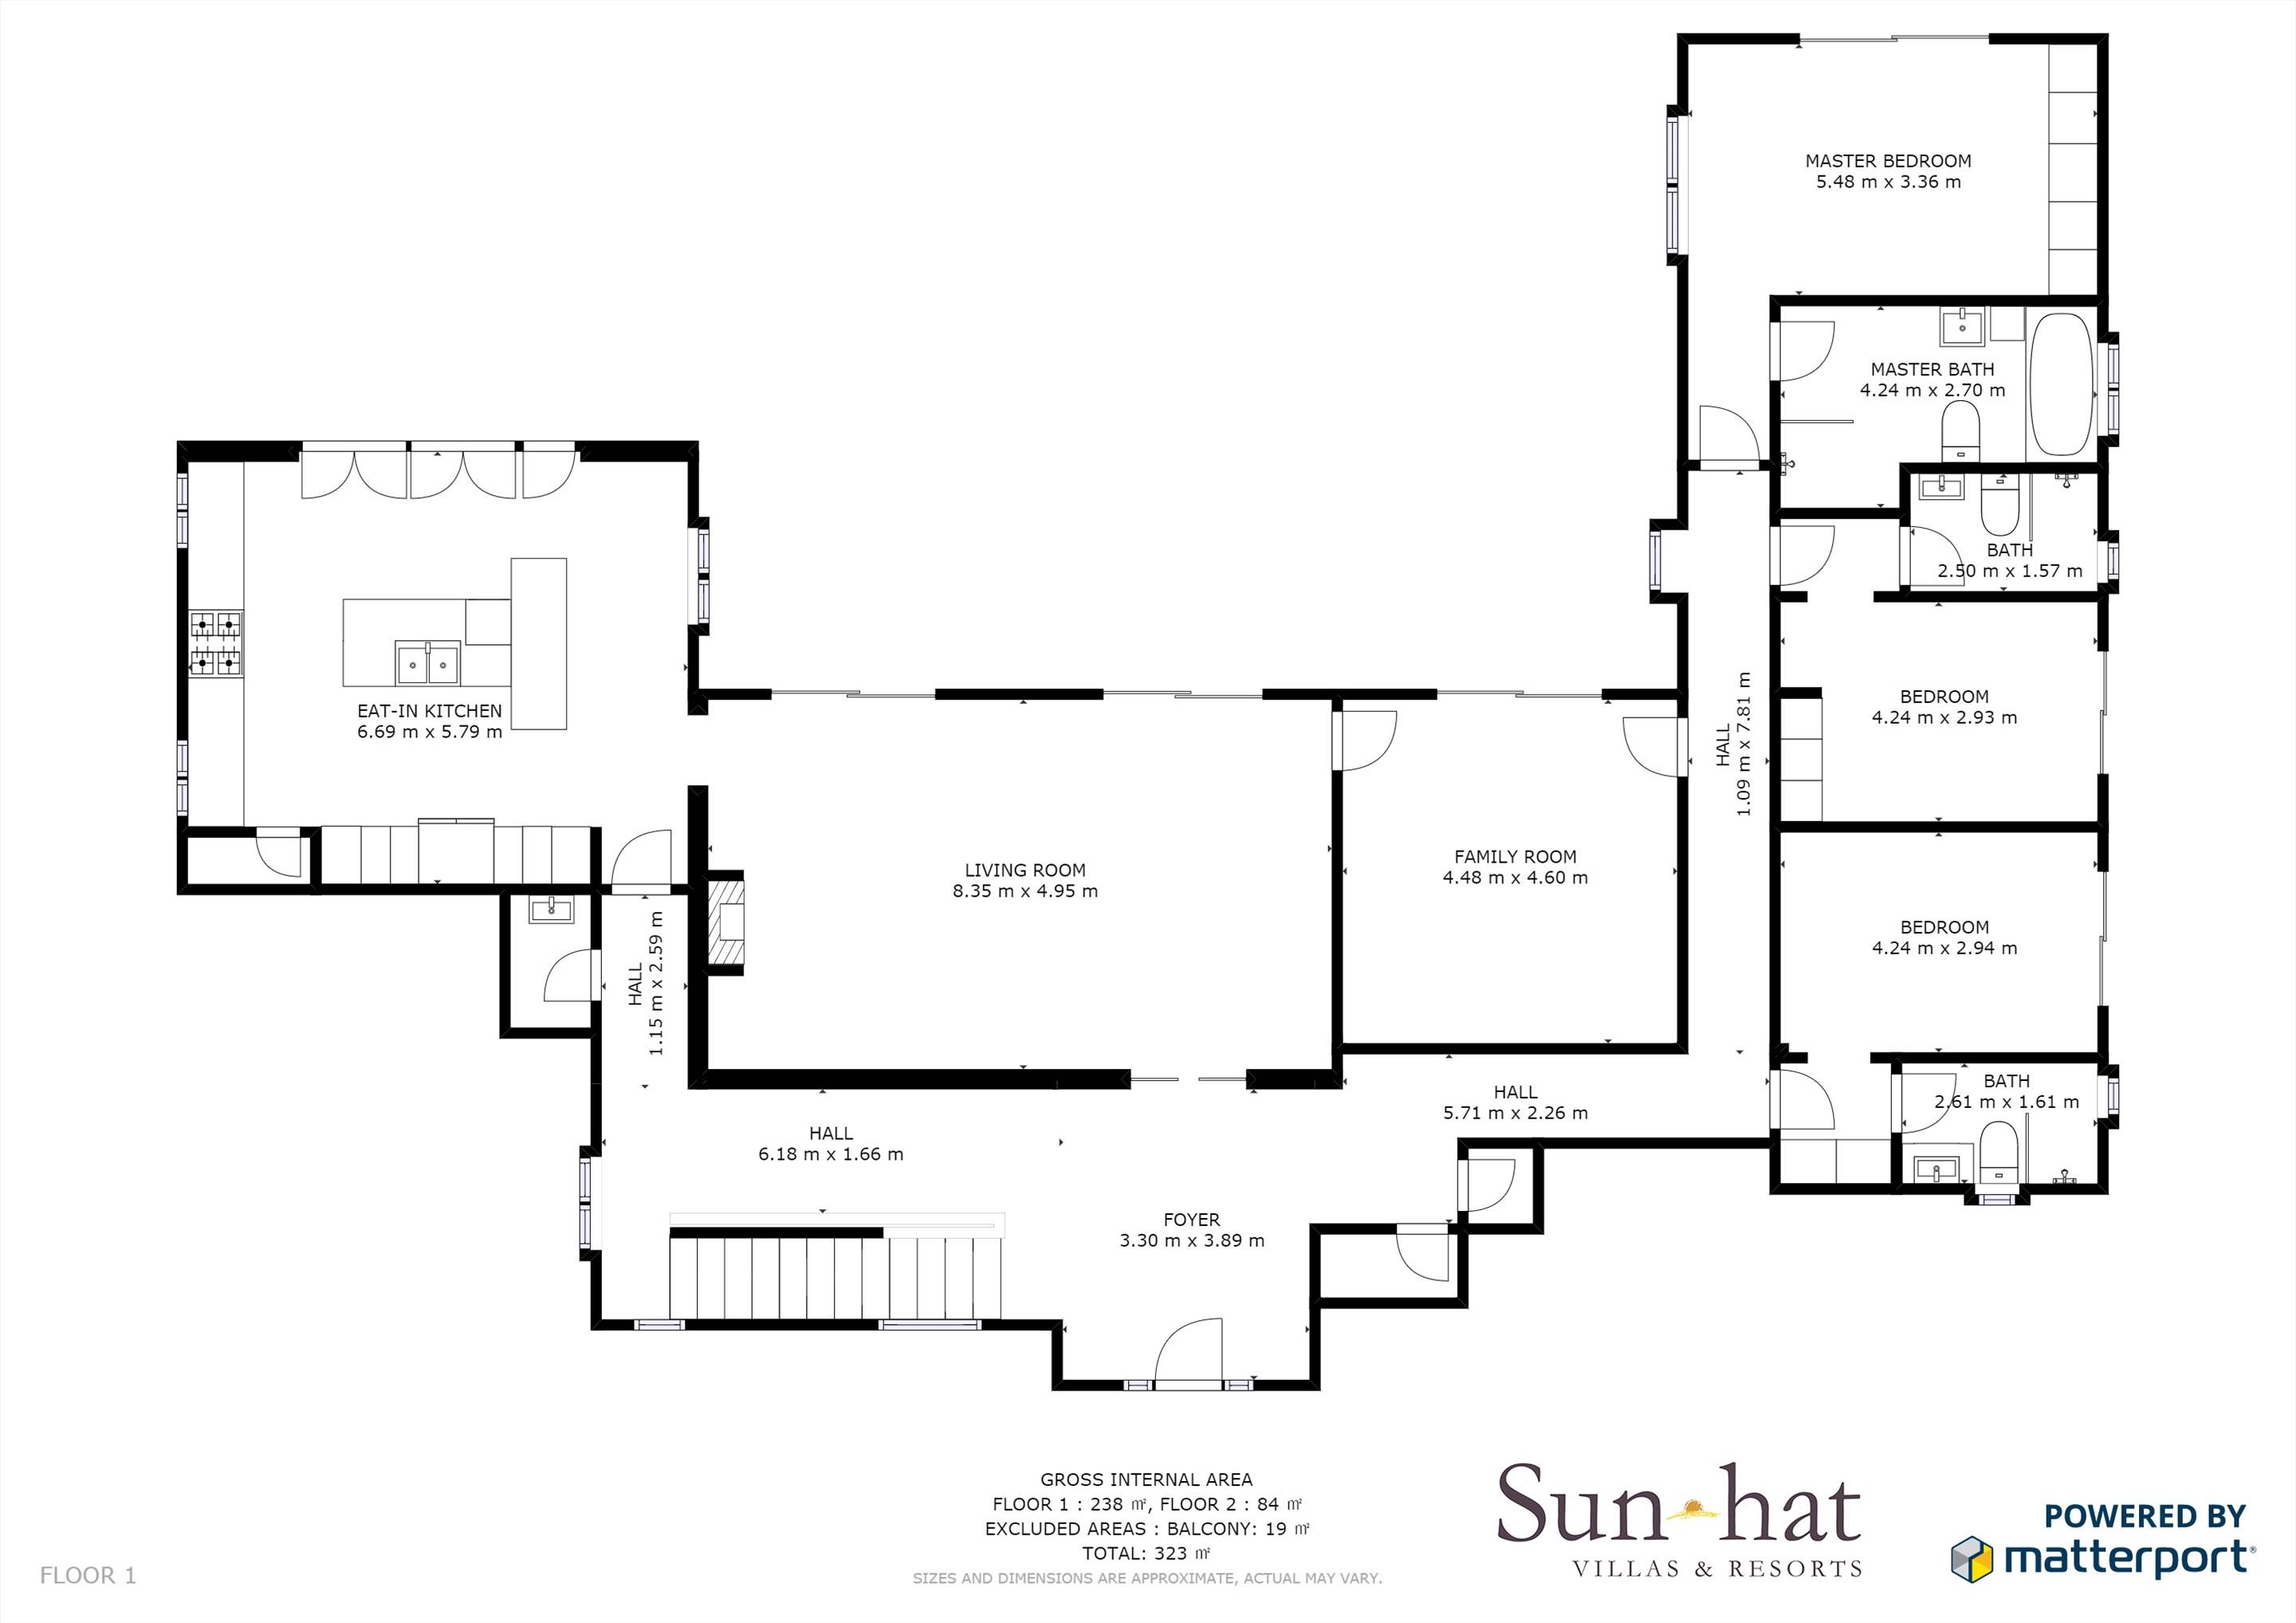 Villa Mar Azul Floorplan #1